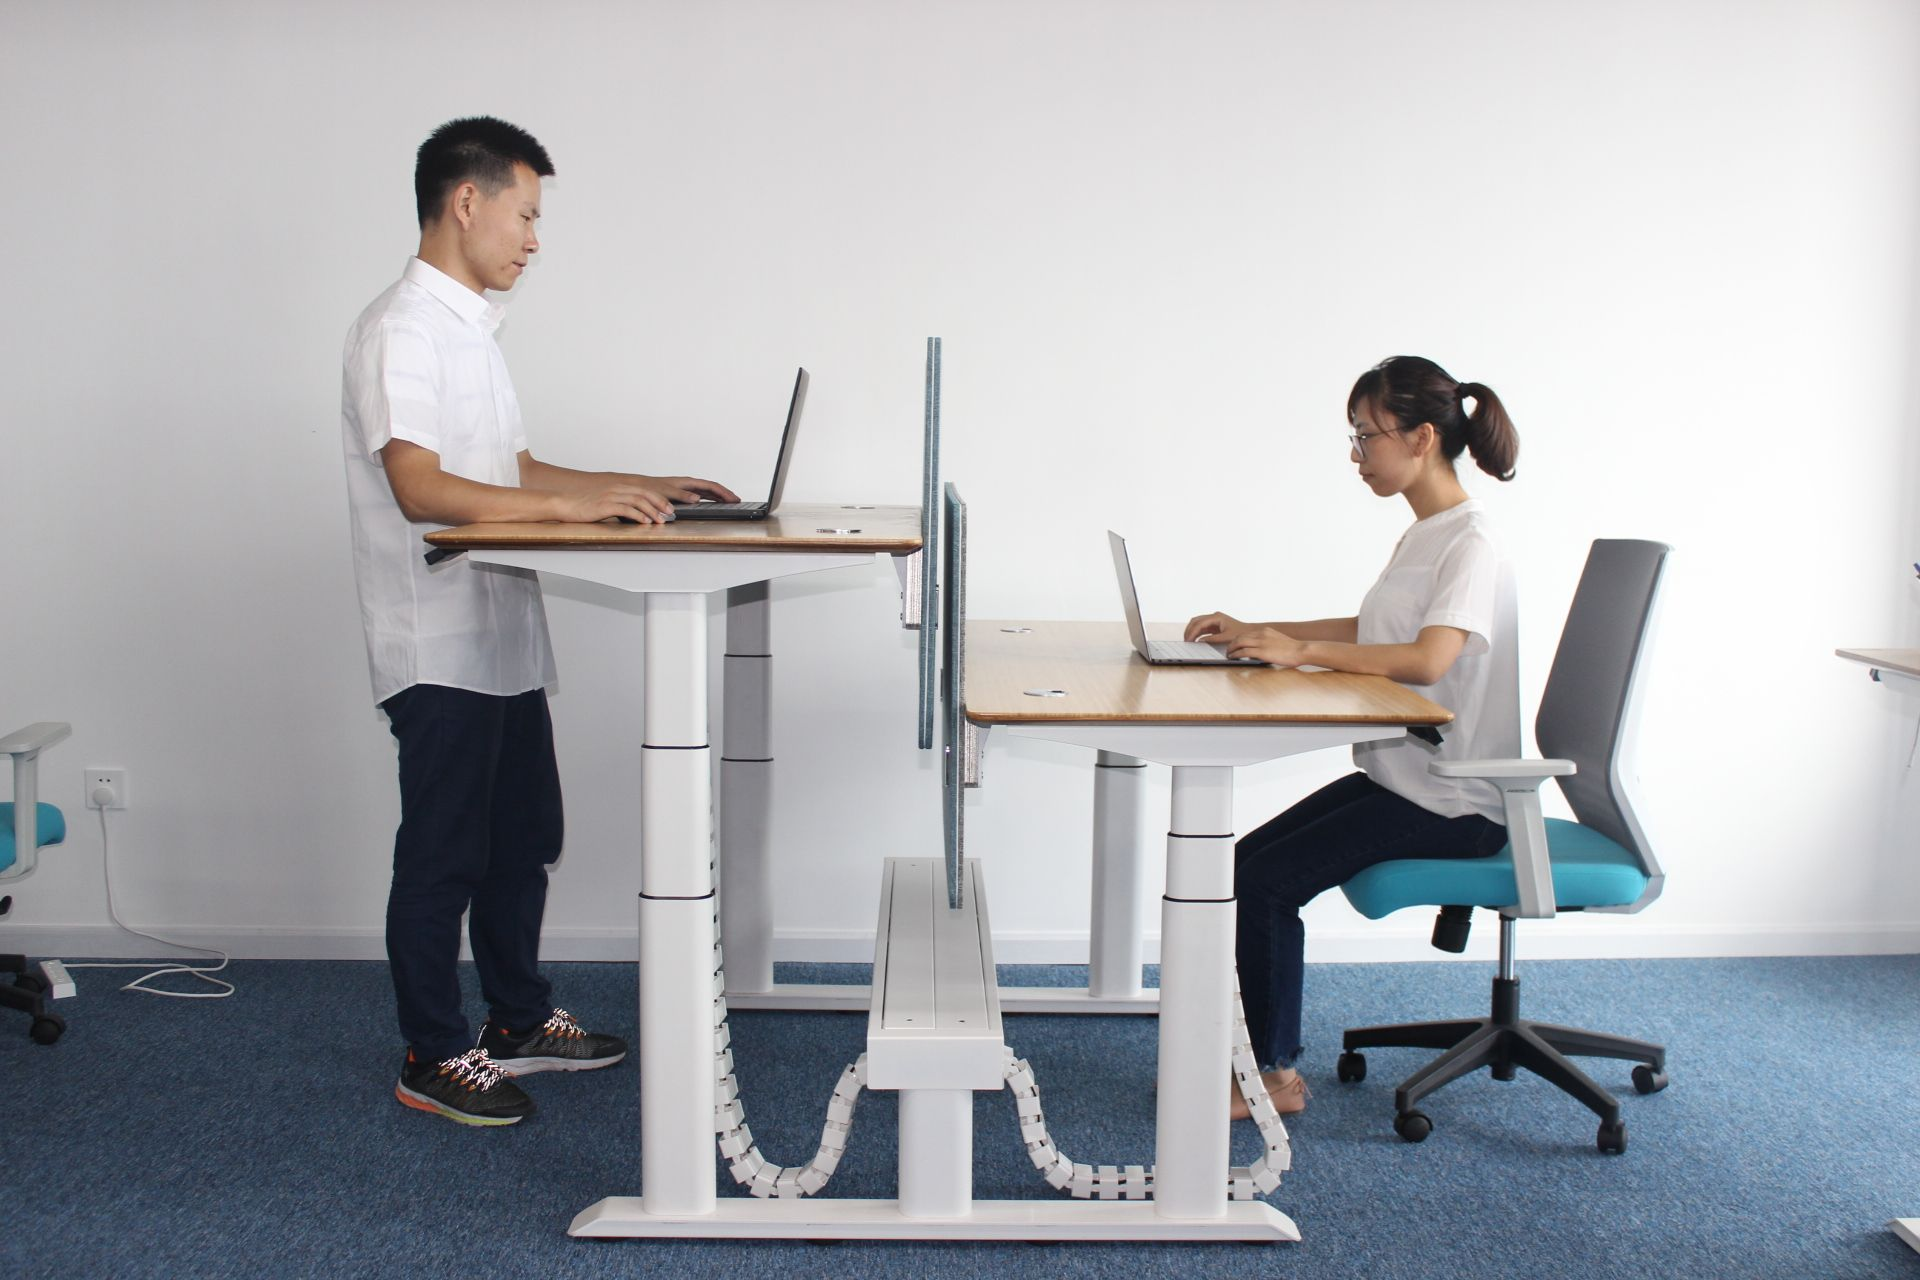 H Shape For Double People Workstation Office Furniture Standing